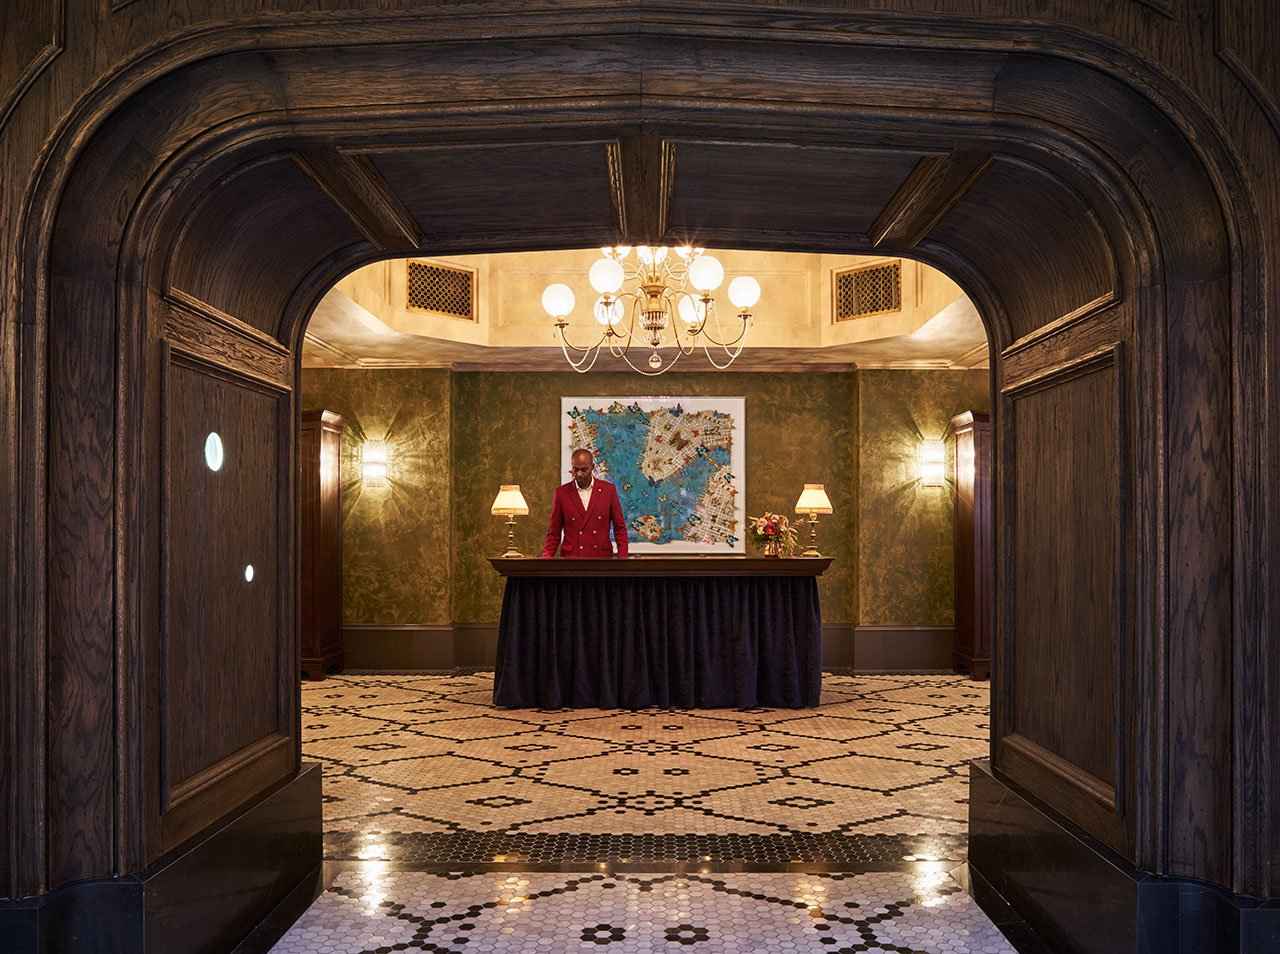 Manhattan Hotel: The_beekman_a_thompson_hotel_new_york_yatzer, Mandy stool by KOKET, luxury furniture